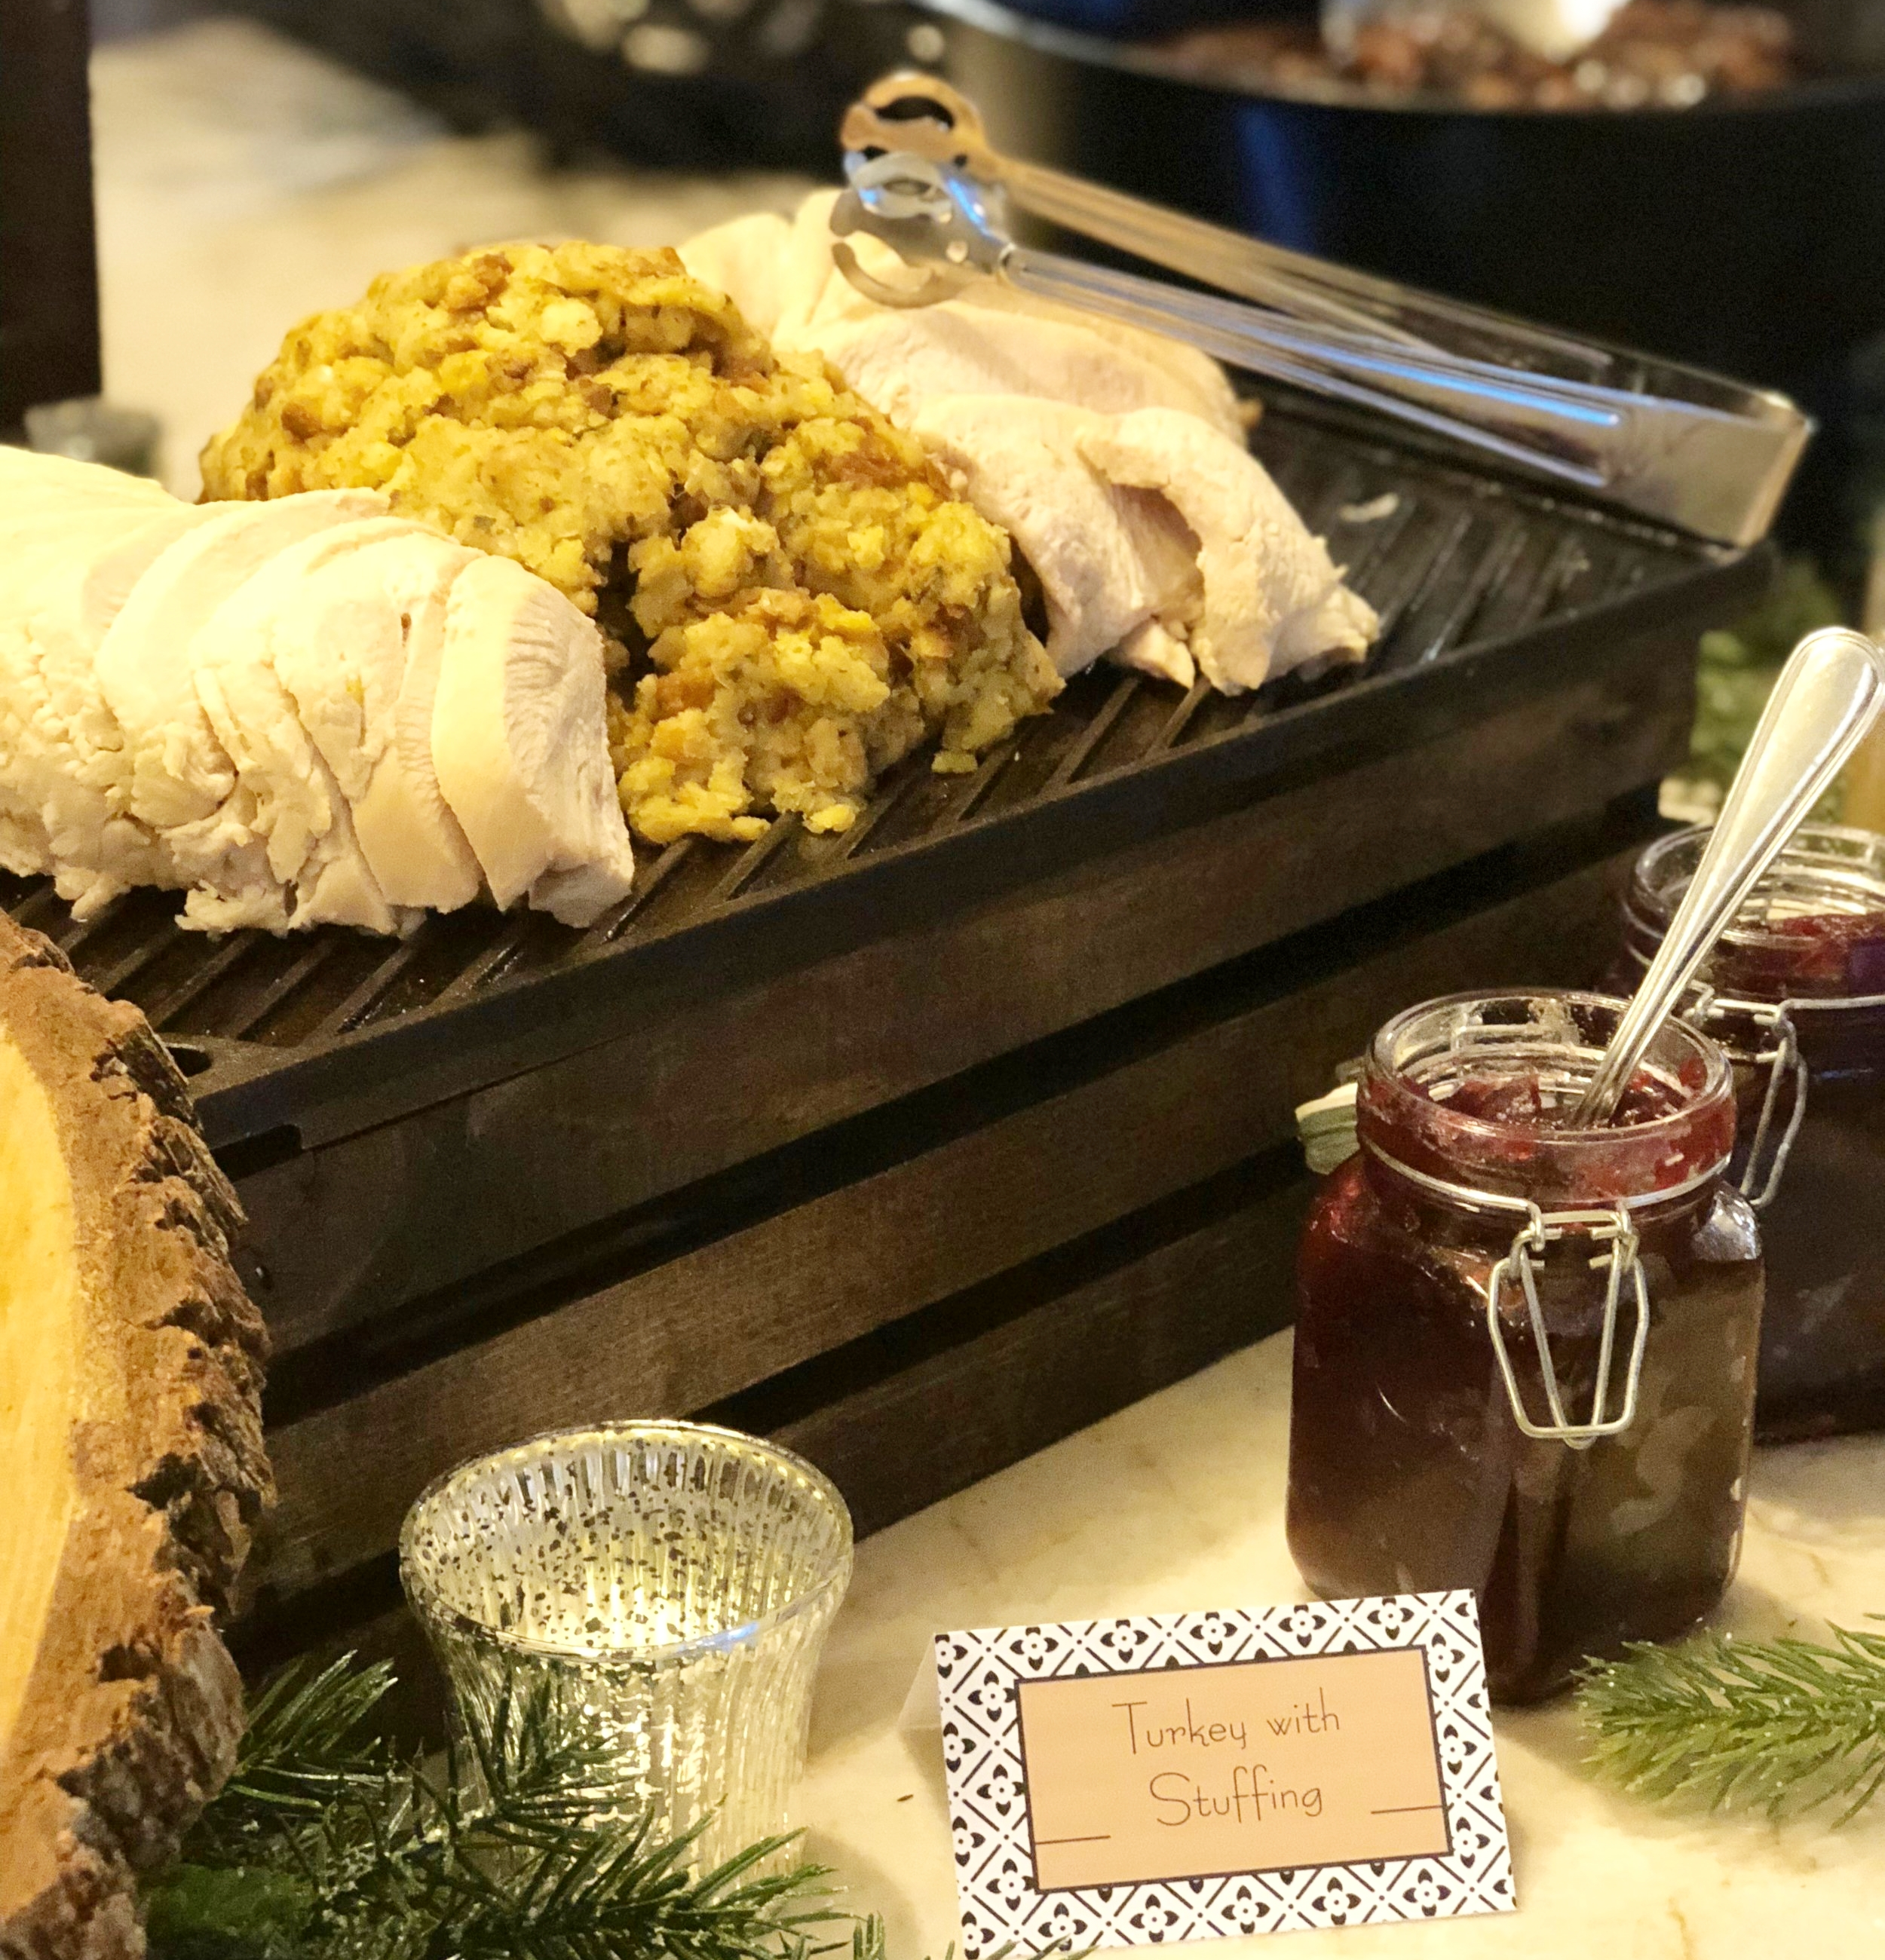 Classic Holiday Menu - This menu was inspired by Norman Rockwell. Your guests will experience the true holiday spirit with these traditional American holiday favorites.